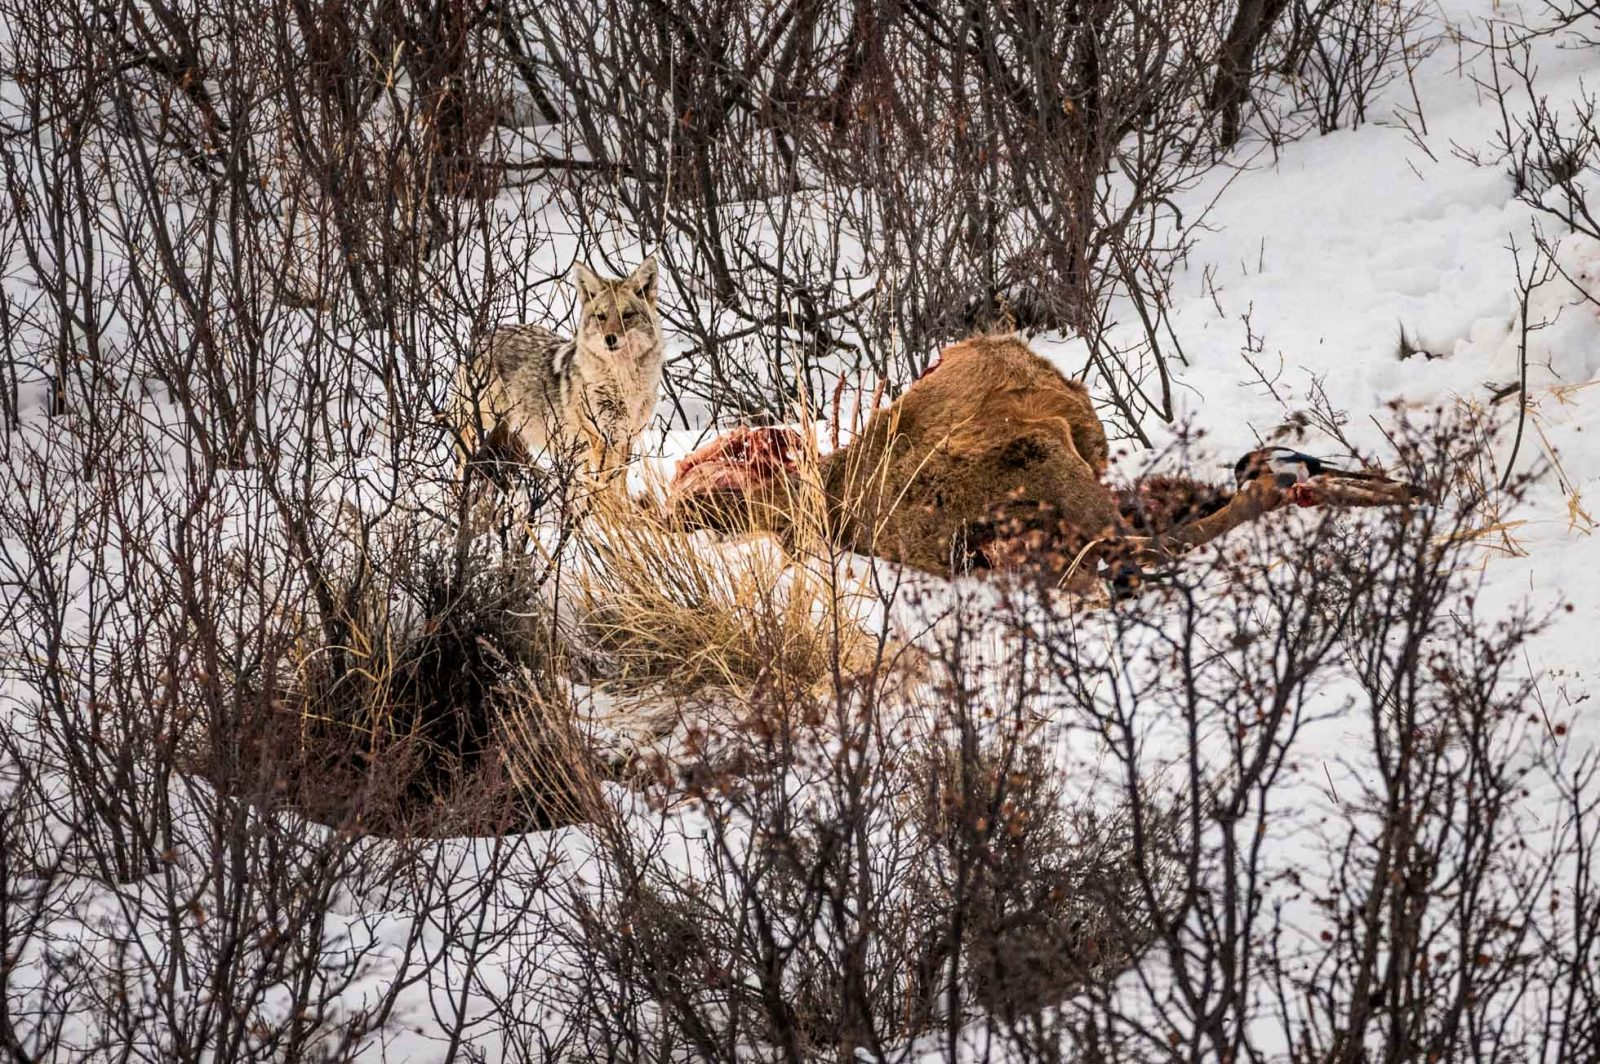 Coyote & Carcass